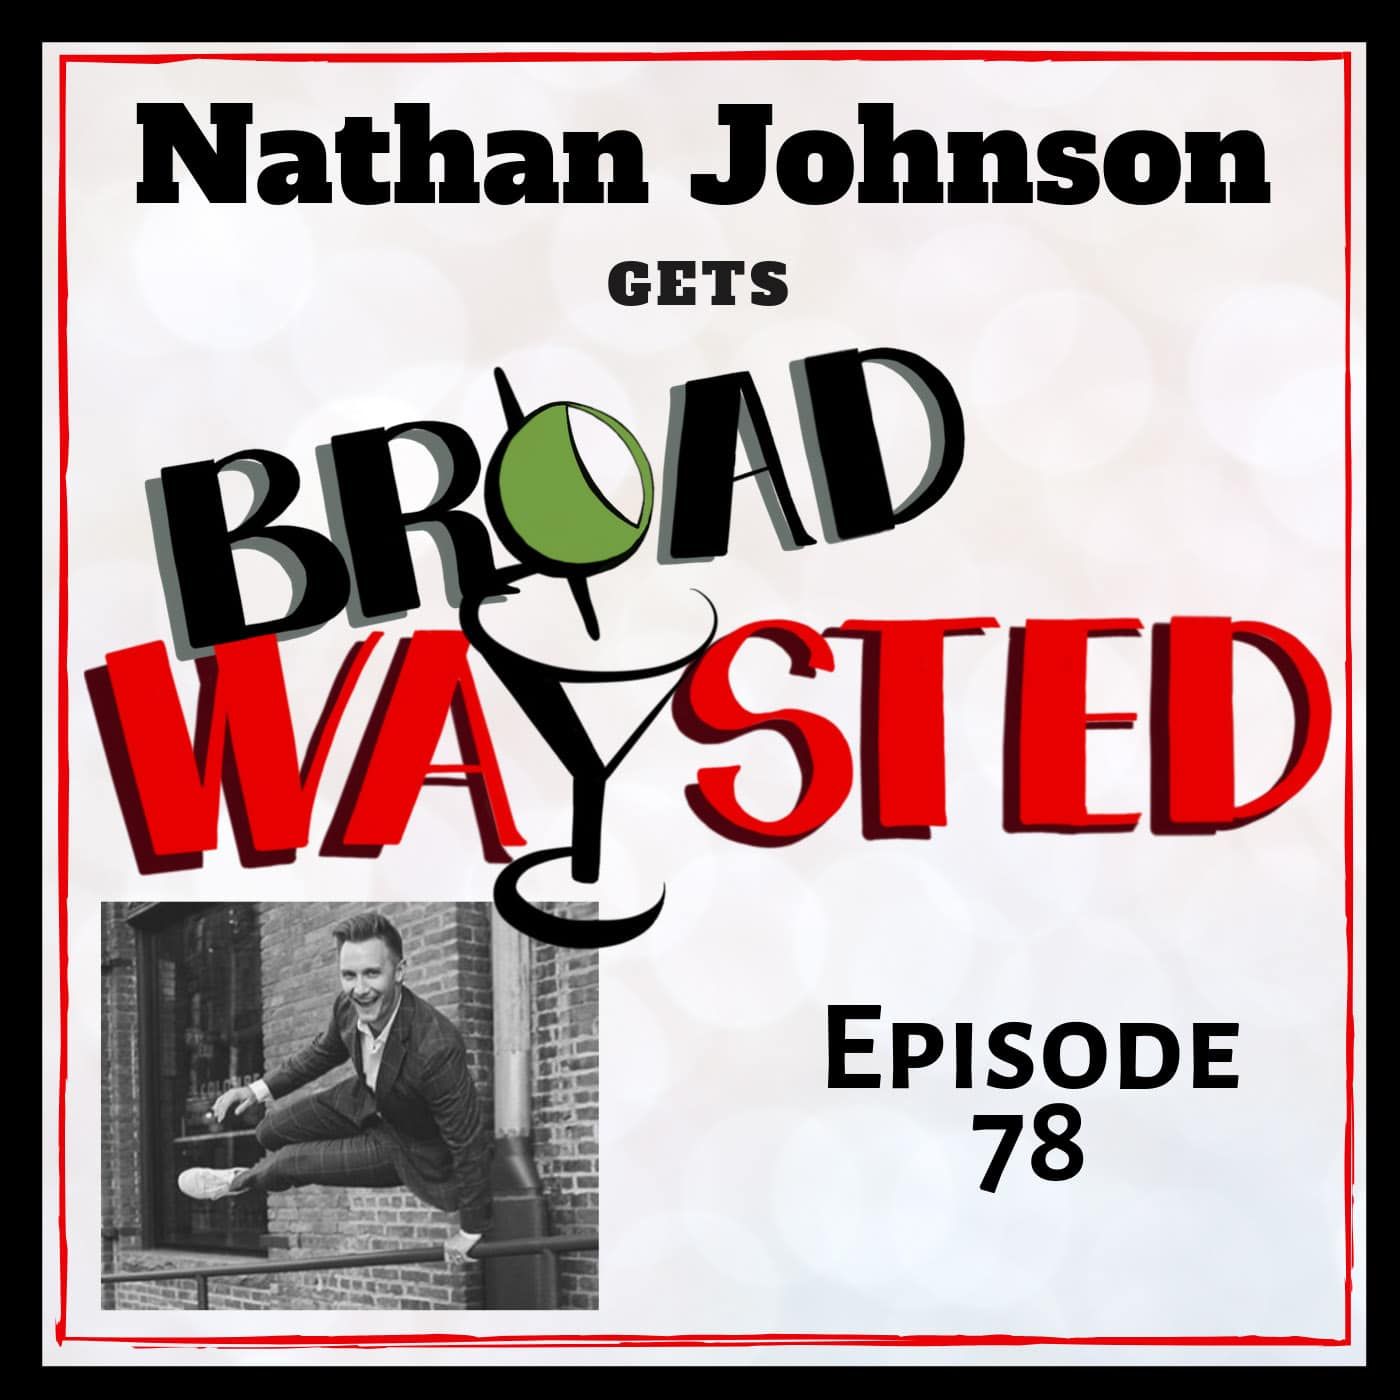 Broadwaysted Ep 78 Nathan Johnson